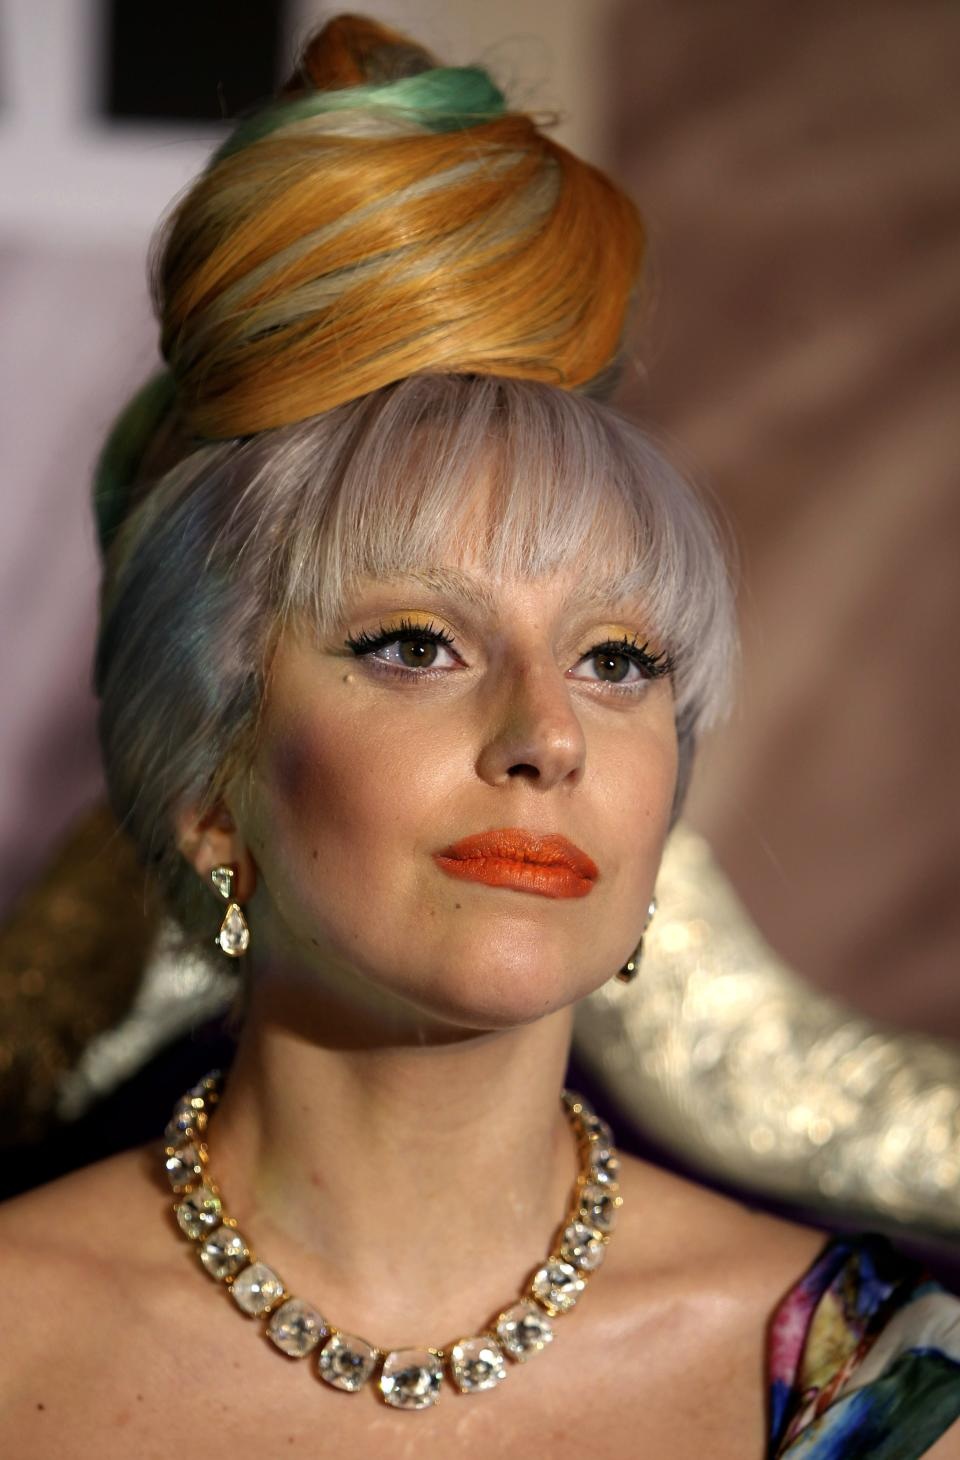 US singer Lady Gaga addresses a press conference in New Delhi, India, Friday, Oct. 28, 2011. (AP Photo/Mustafa Quraishi)